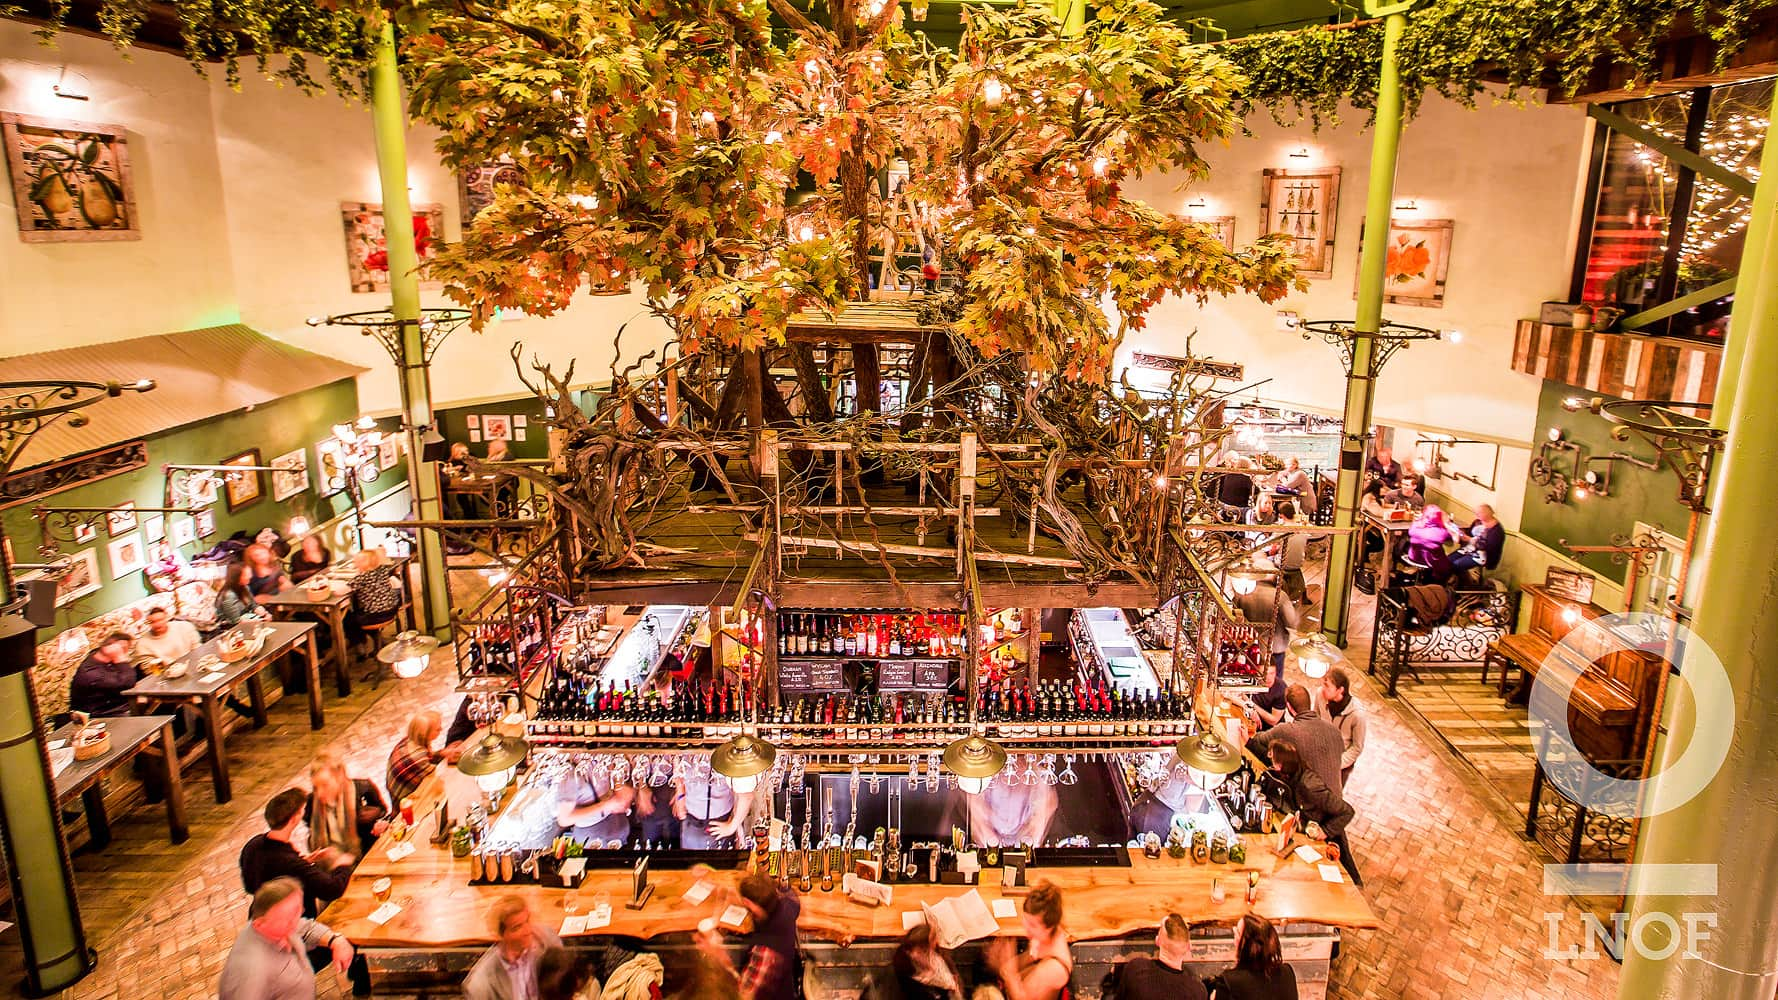 The pavilion-style bar at the Botanist in Newcastle